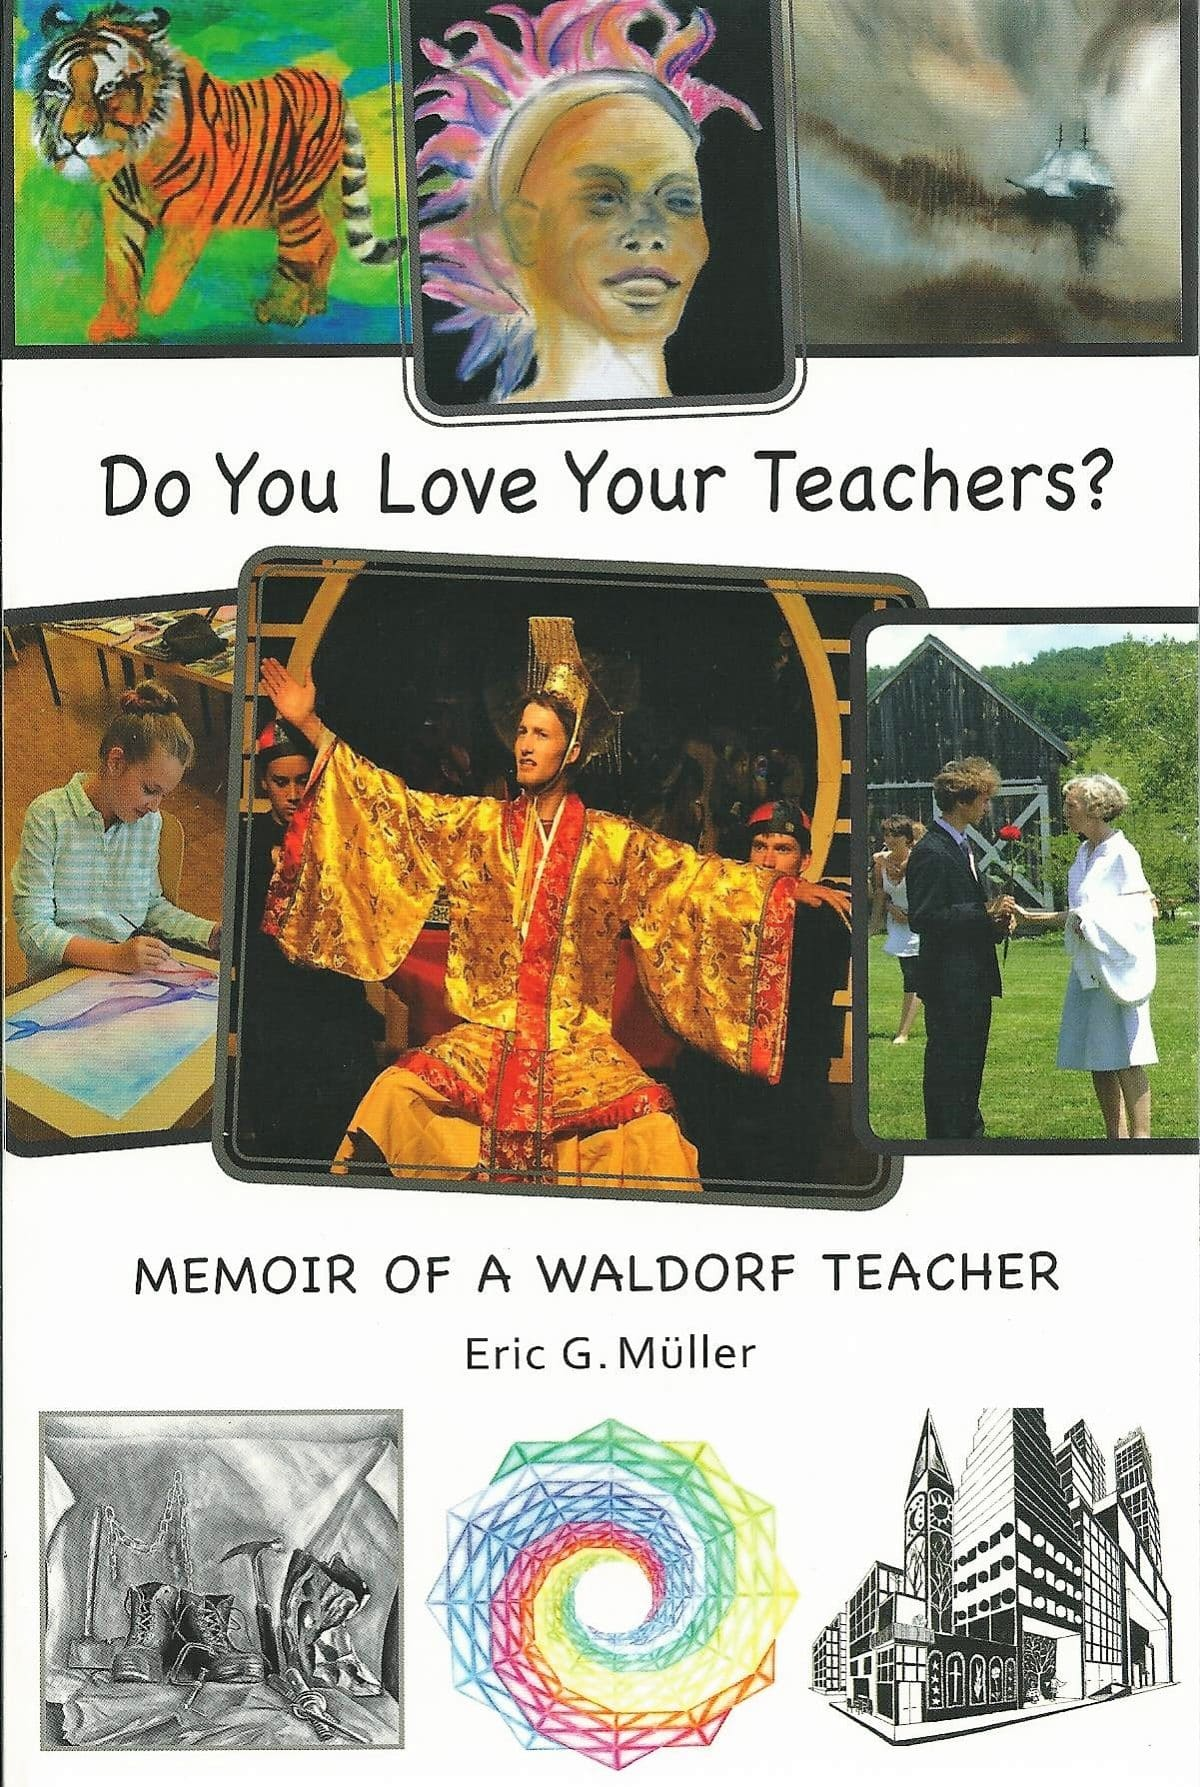 Do You Love Your Teachers?